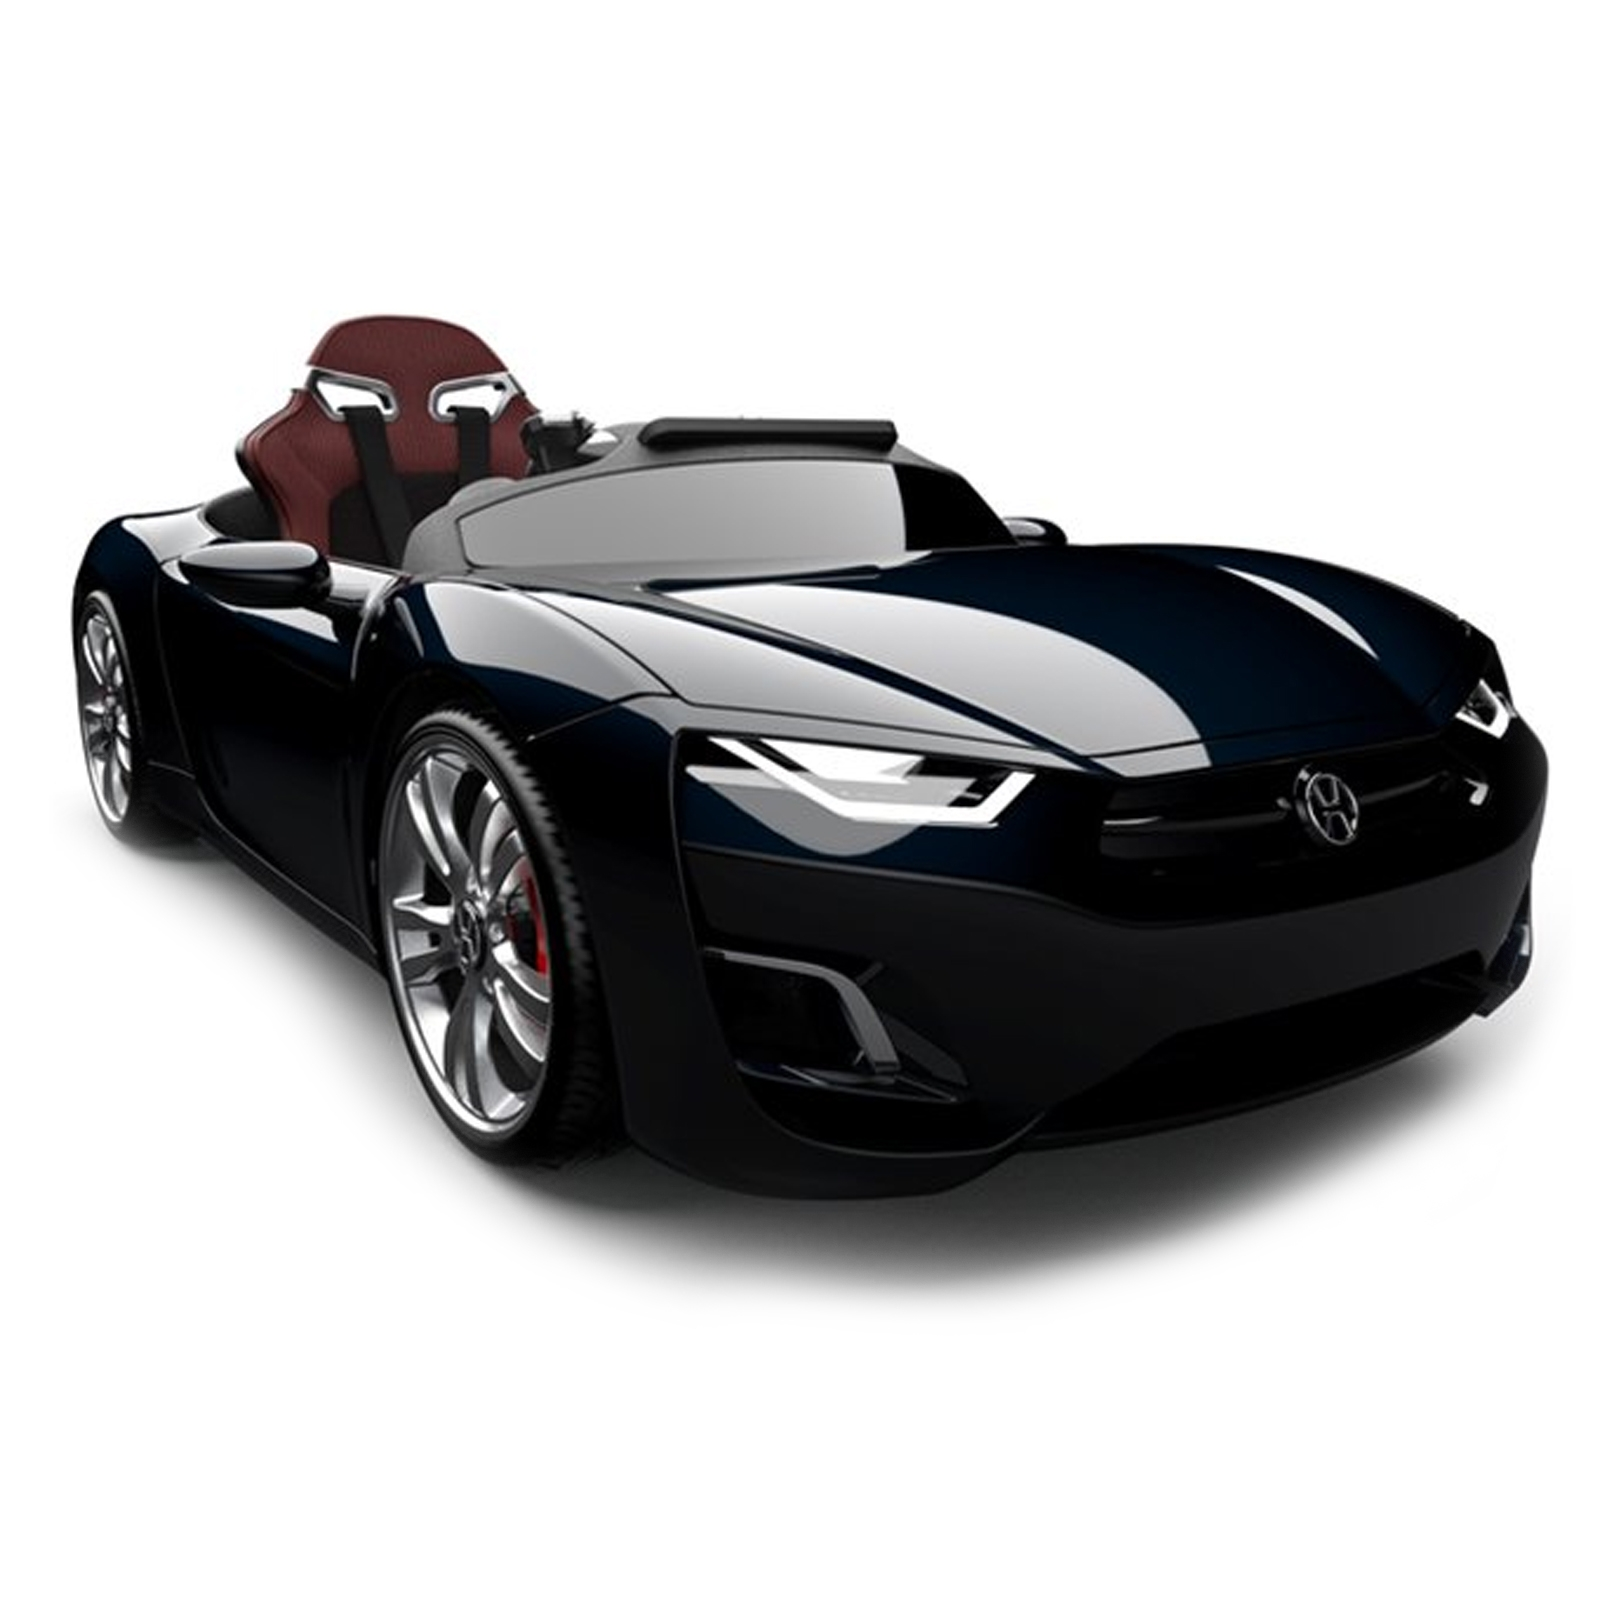 Henes Broon F830 12V Kids Battery Powered Ride On Car in Black